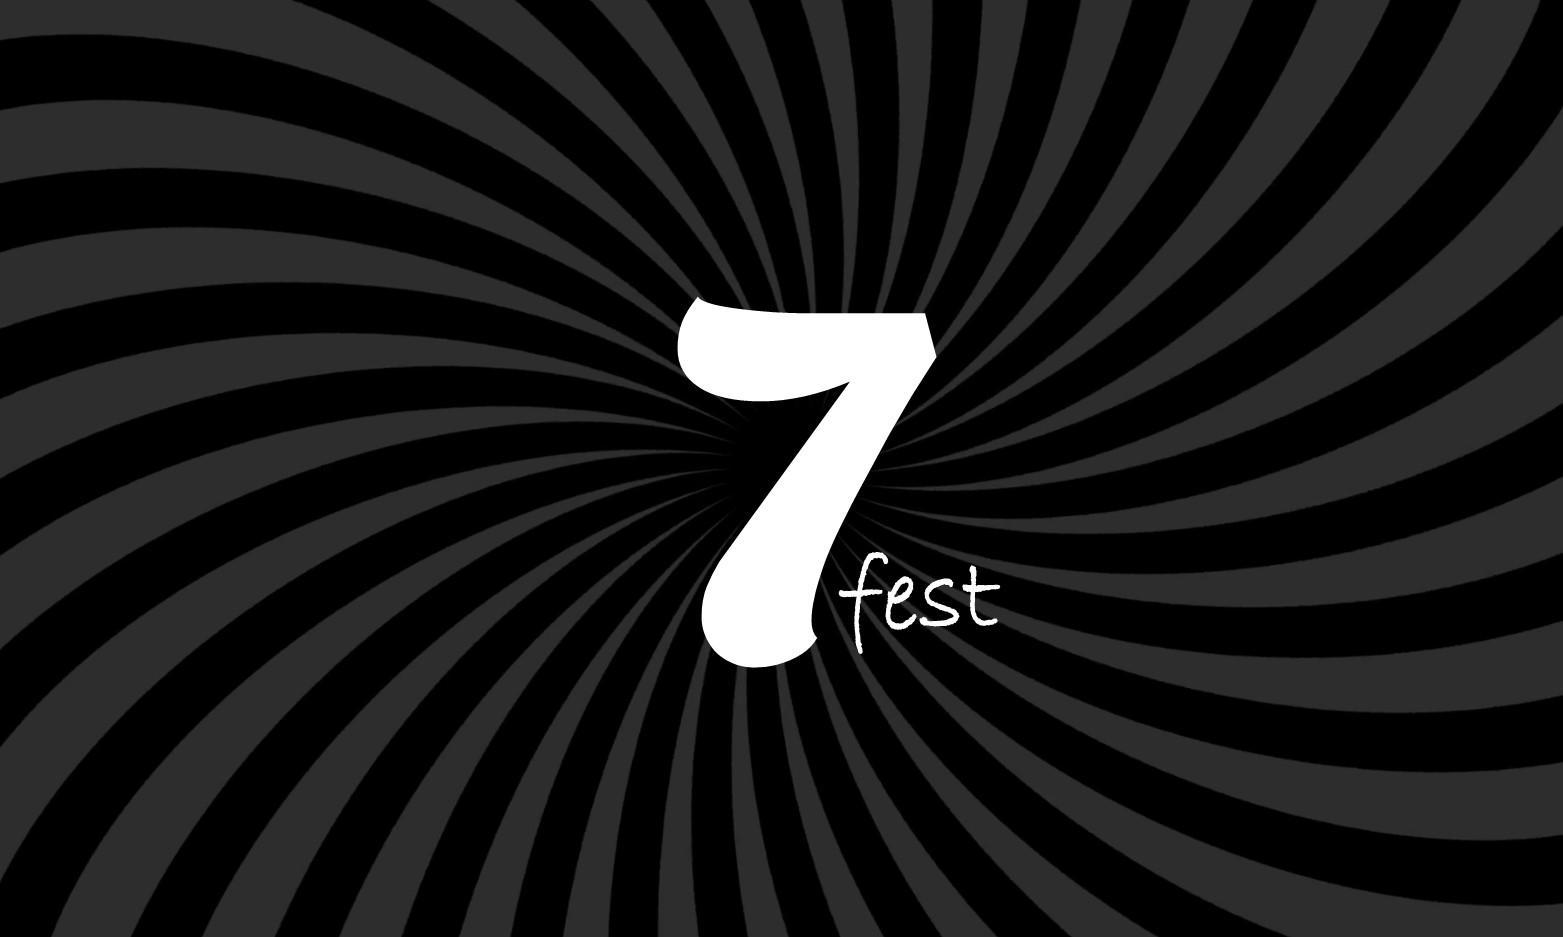 7fest - August Bank Holiday 2018